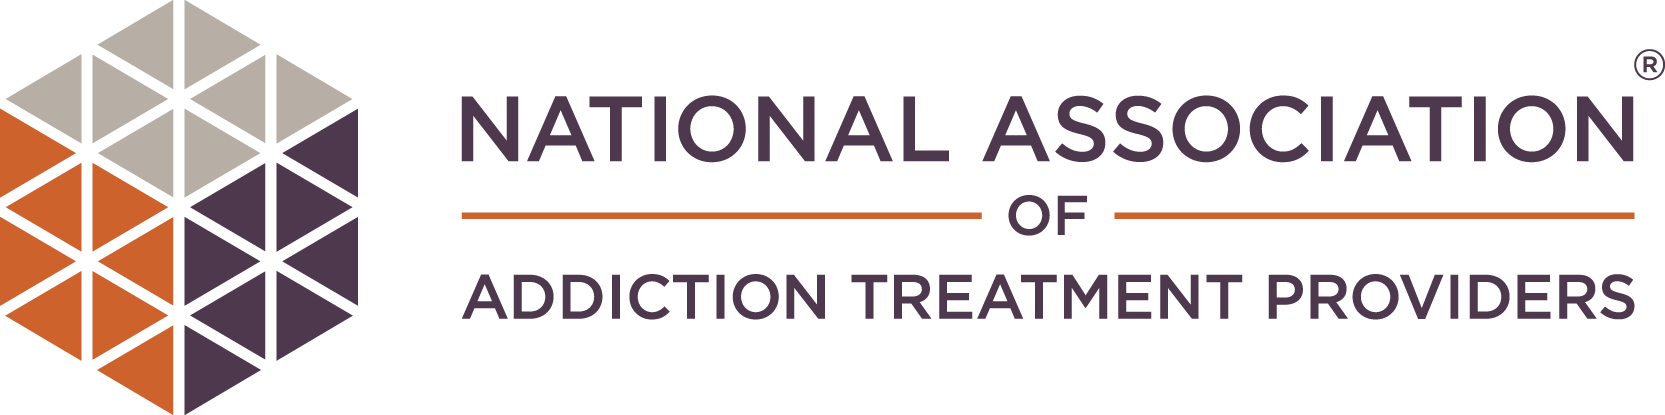 NAATP - National Association of Addiction Treatment Providers